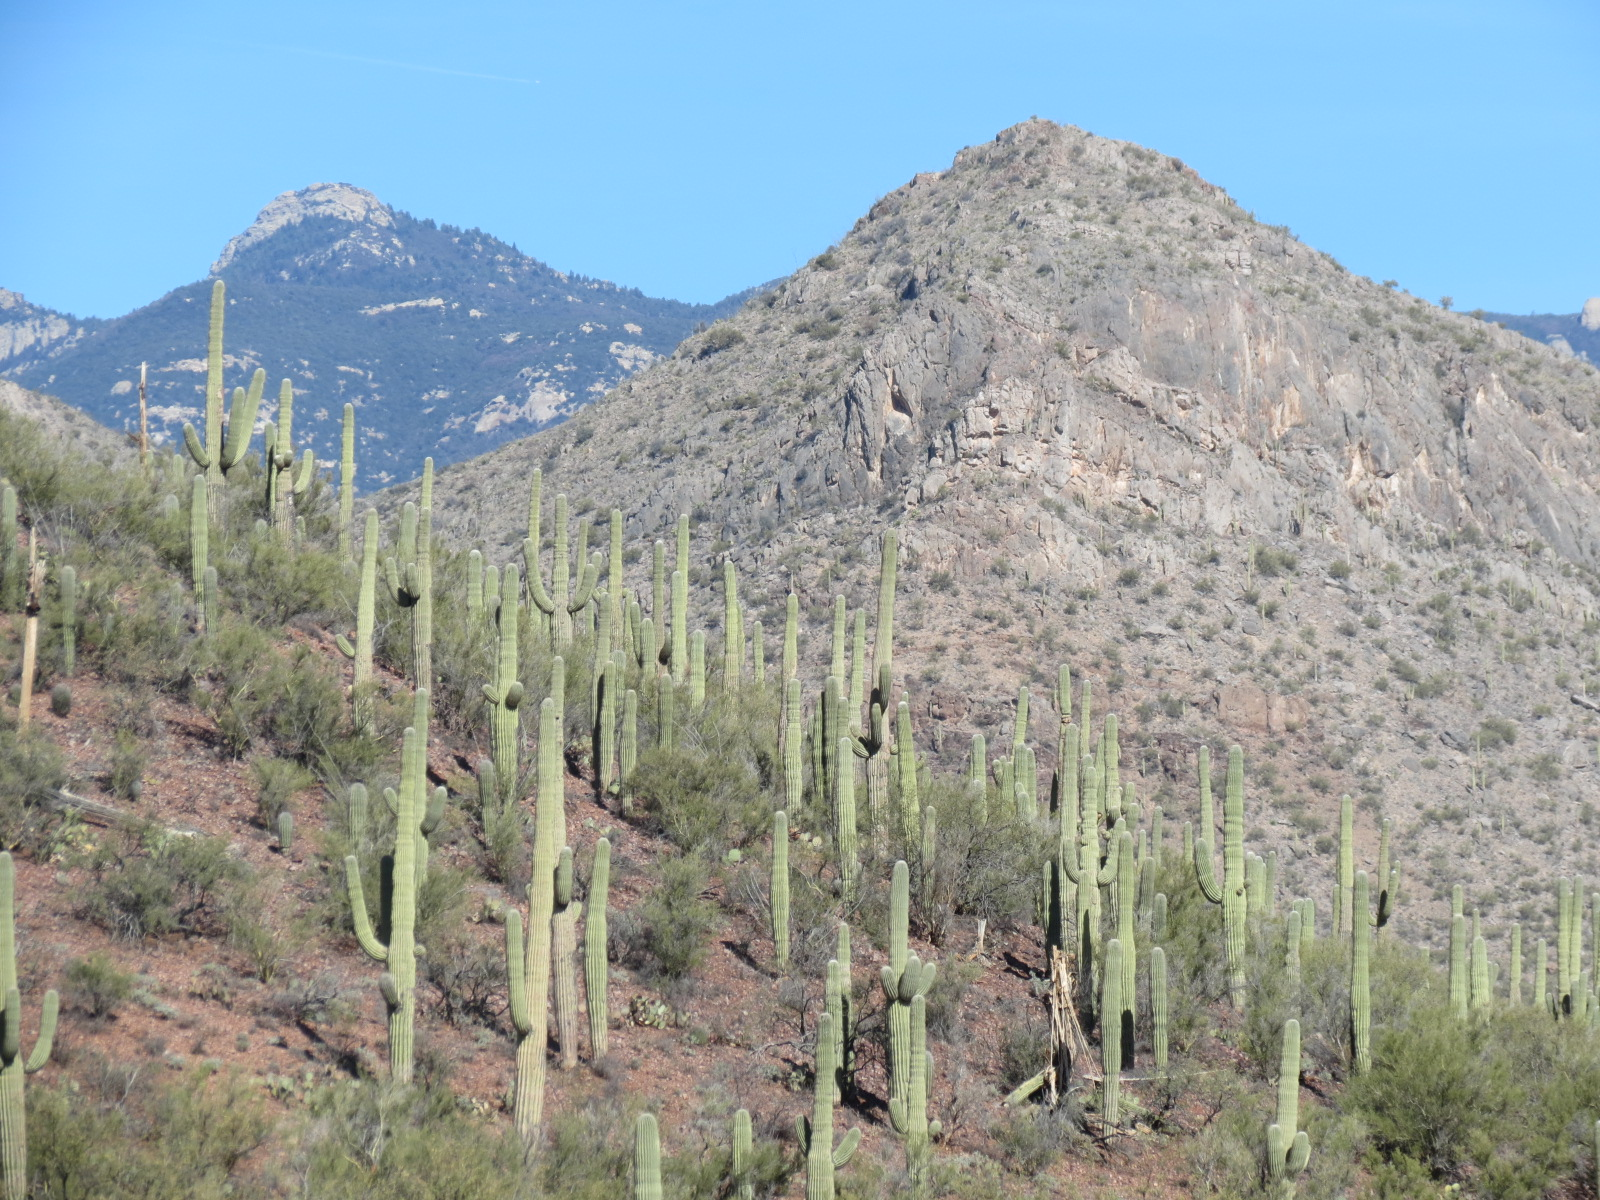 Saguaro National Park hillside